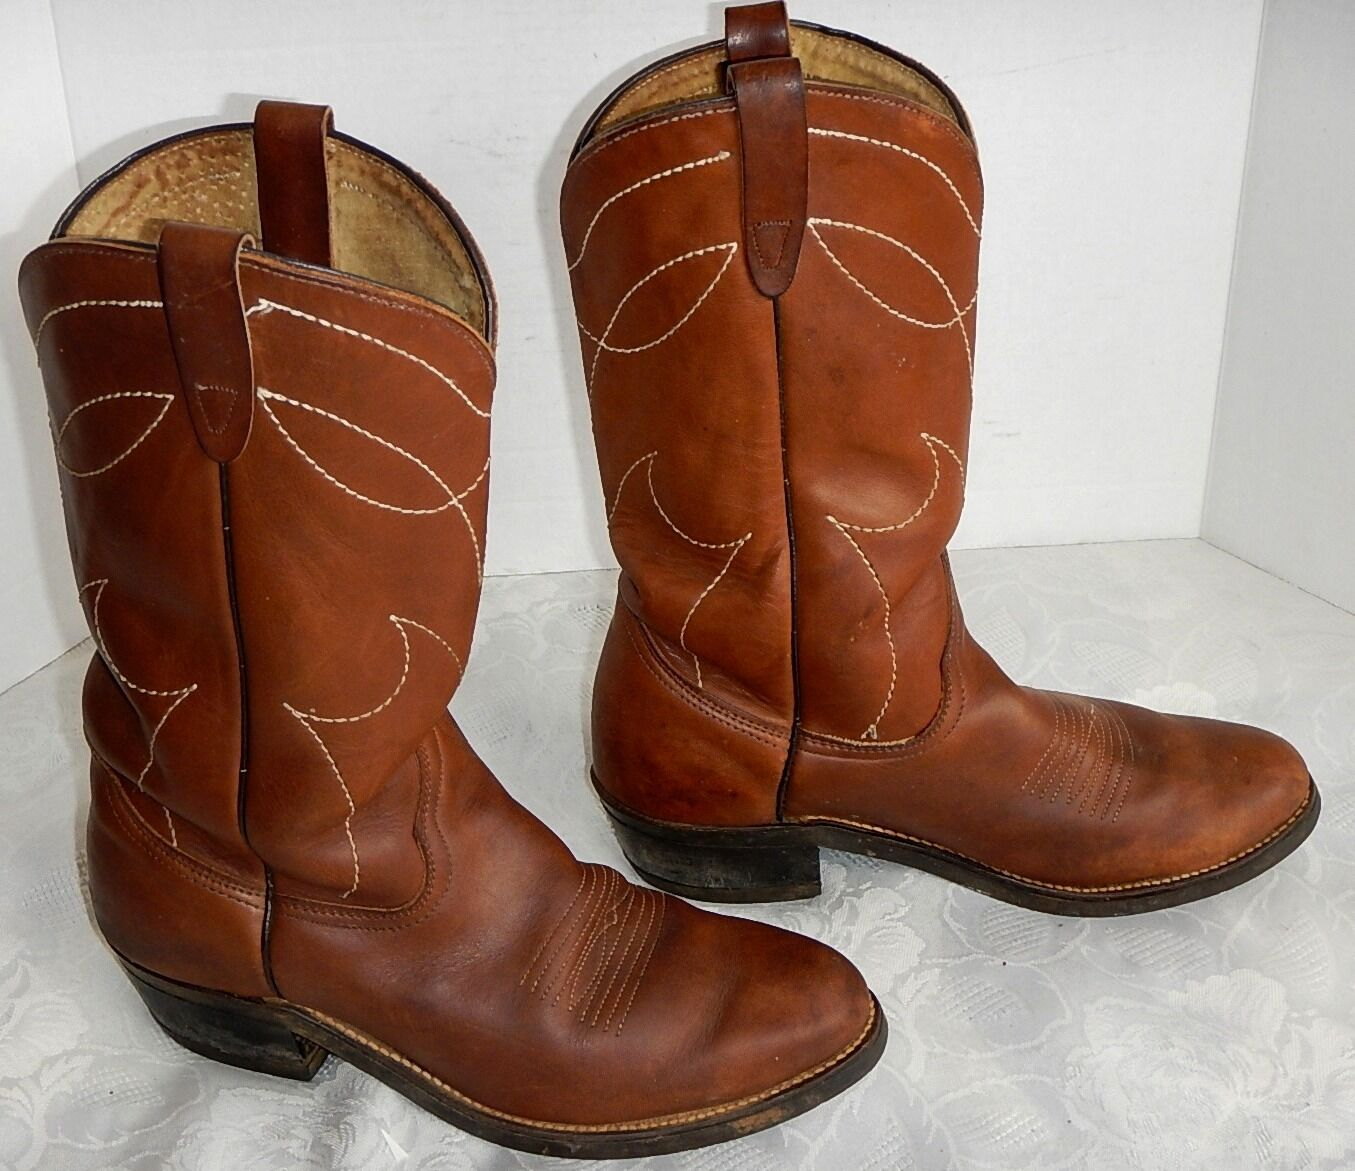 VULCAN Cowboy Western Working  Brown Leather Boots SZ 8.5 USA GREAT